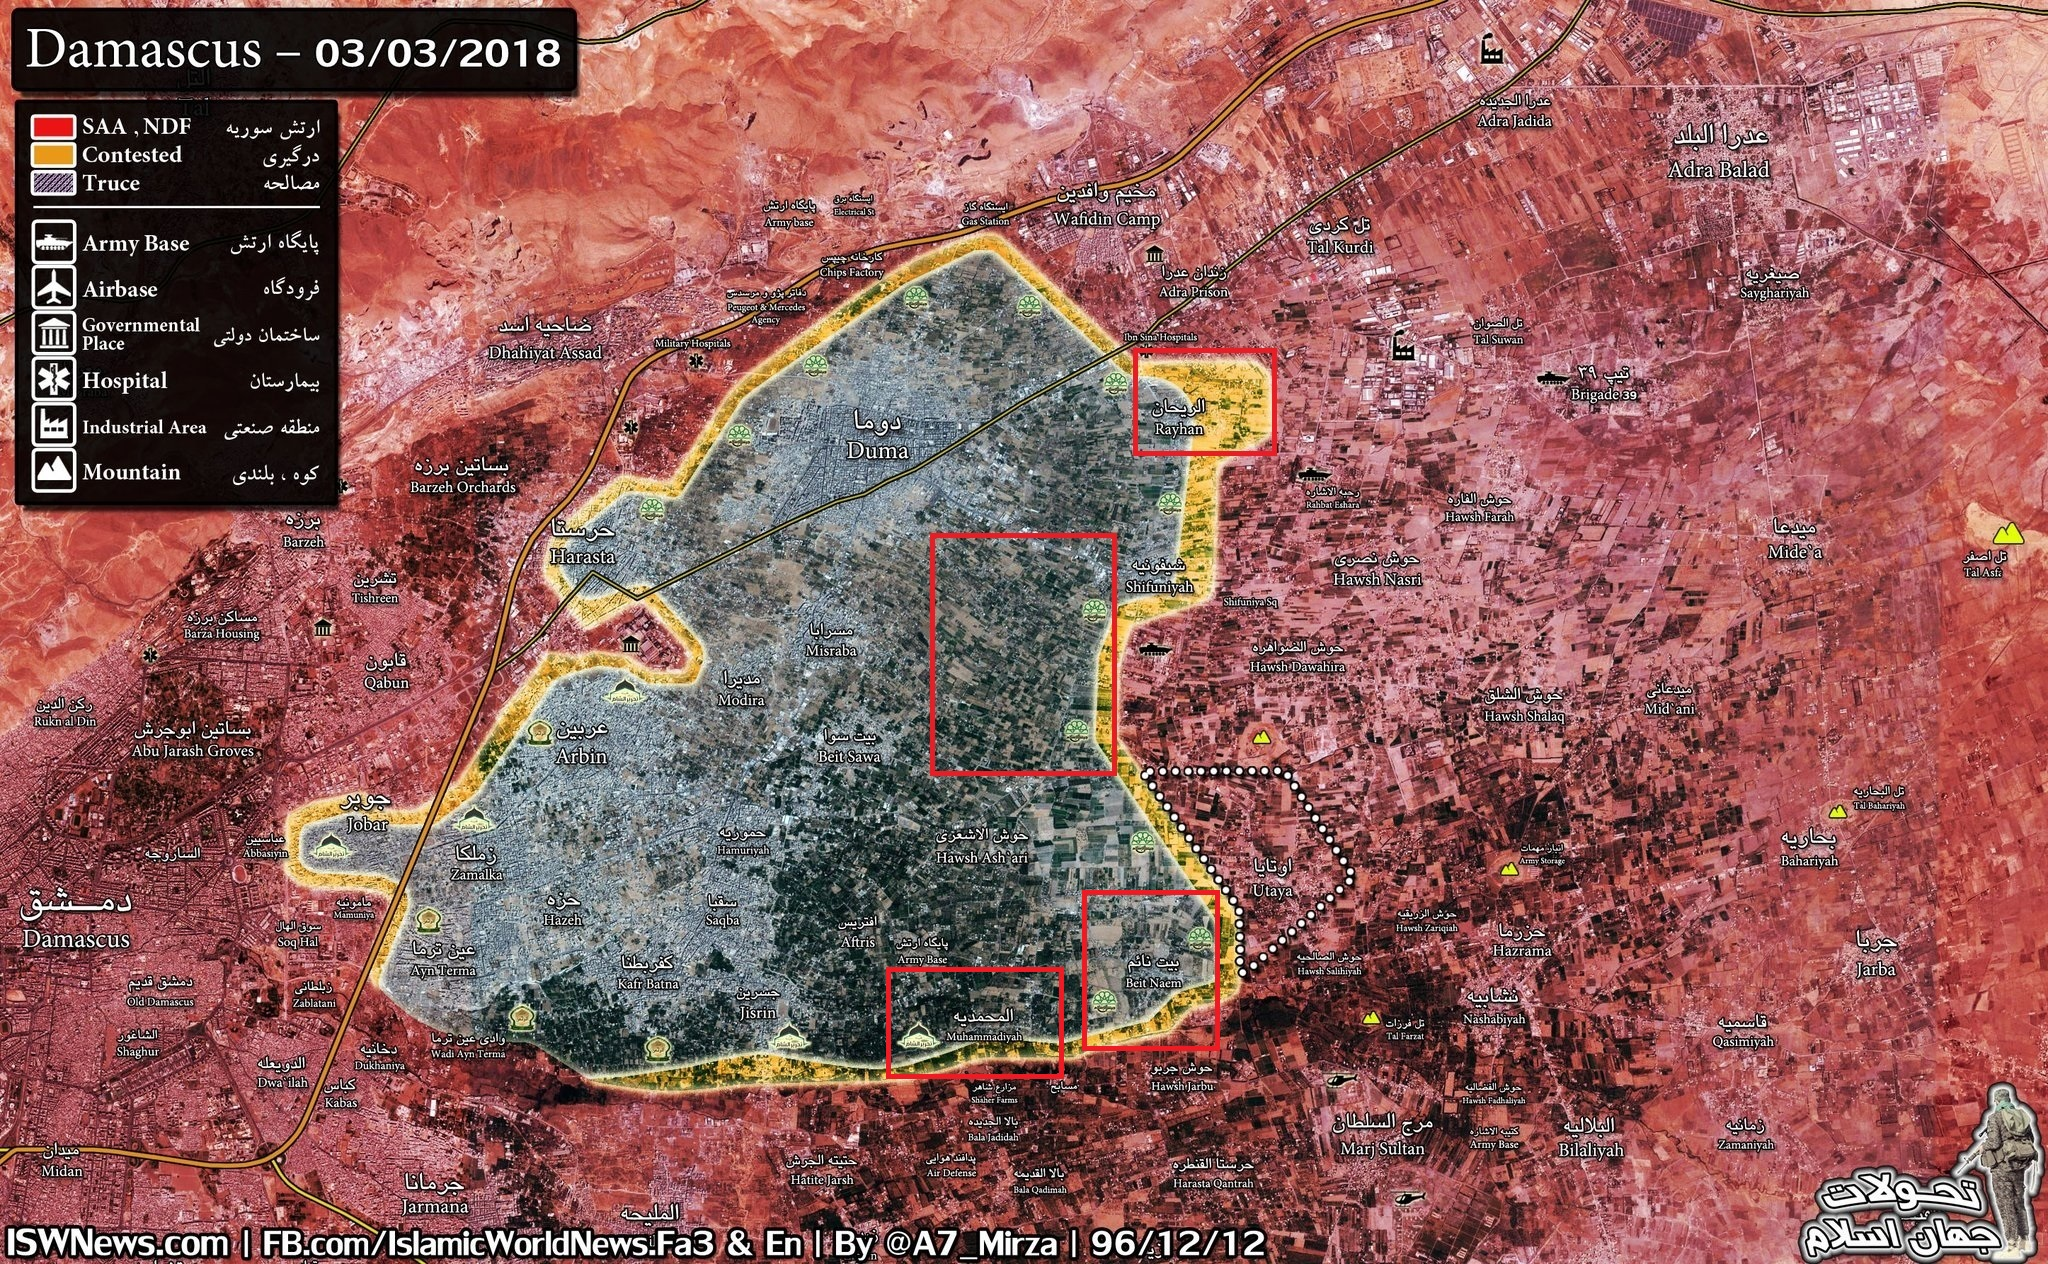 Syrian Army Achieves Significant Success In East Ghouta as Jaysh al-Islam's Defense Collapses (Video, Map)